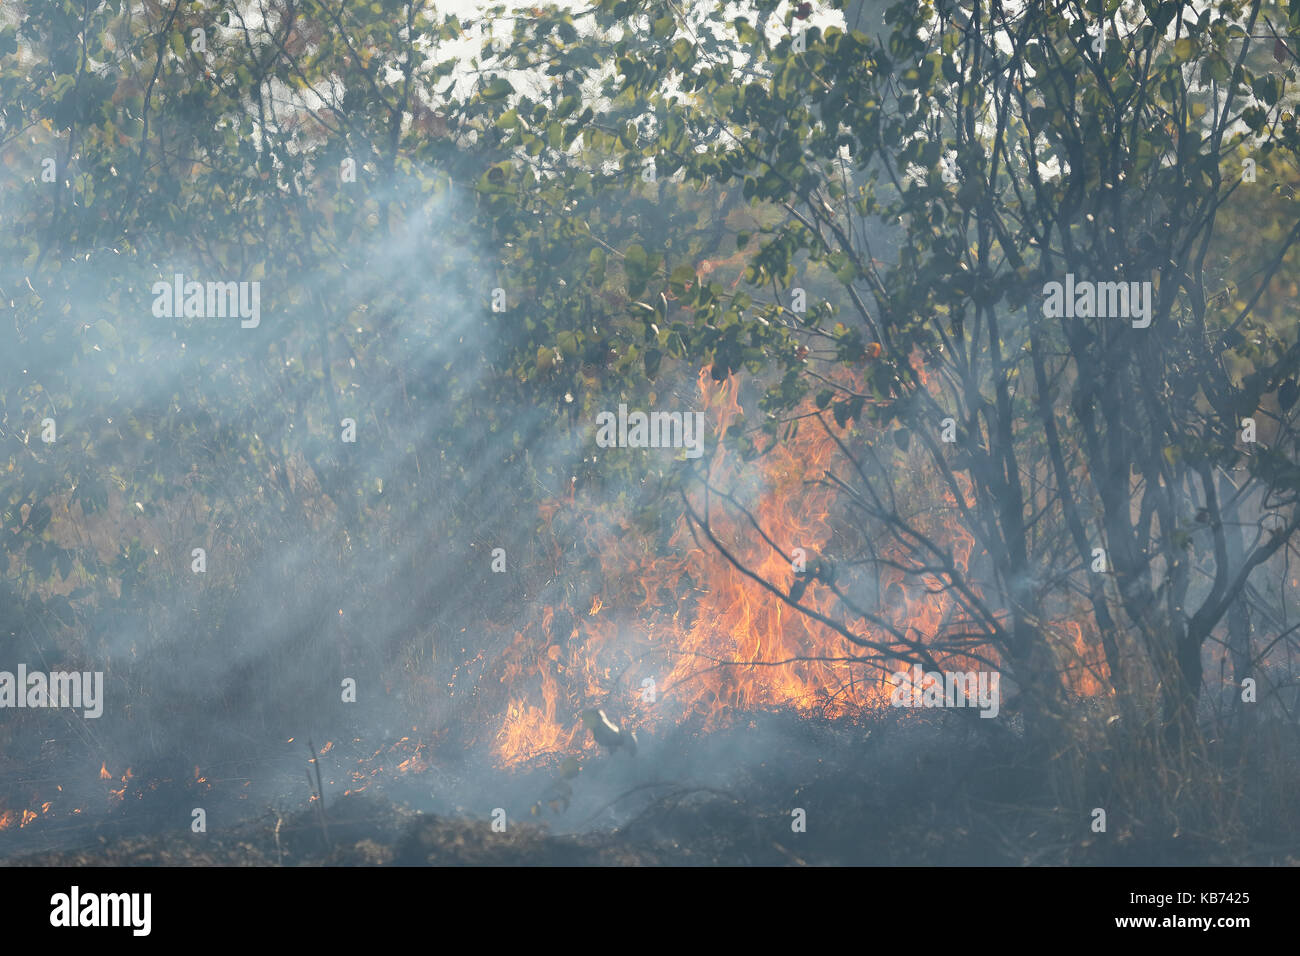 Grassland Fires Stock Photos & Grassland Fires Stock ...